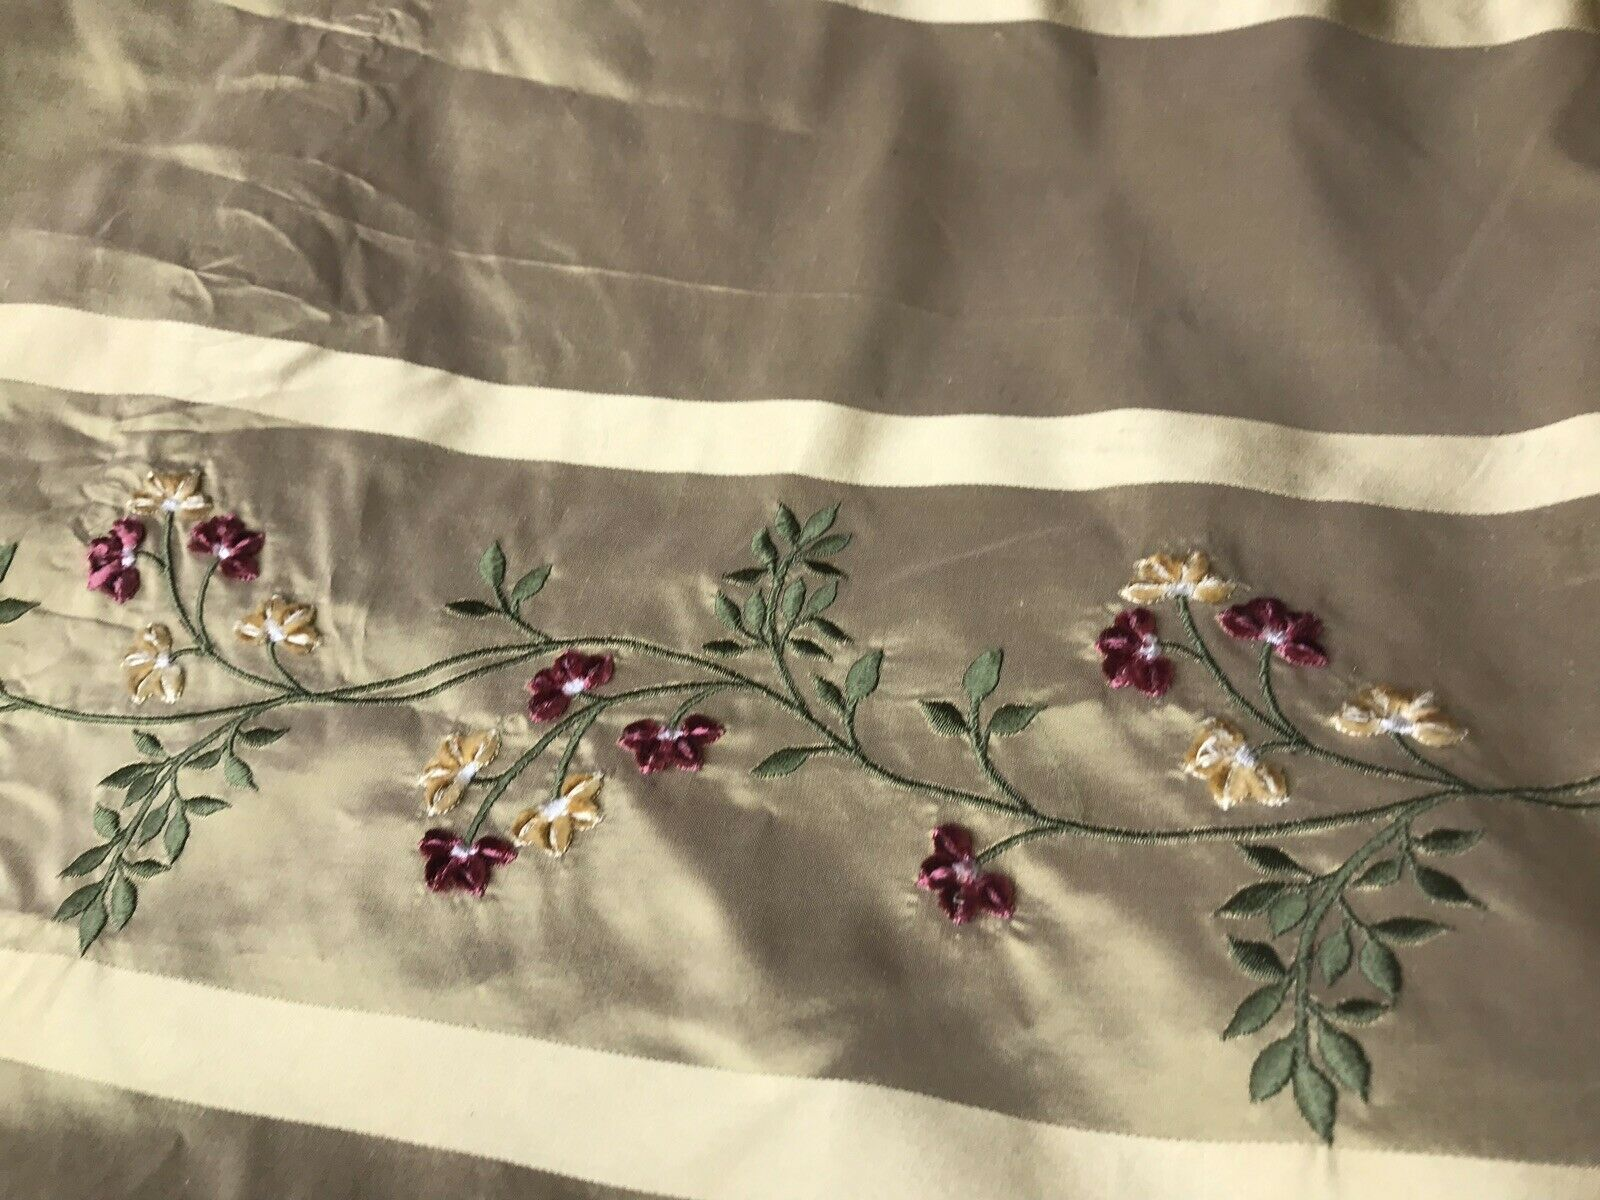 Princess Harriet Designer 100% Silk Taffeta Dupioni Embroidery Floral Fabric -Gold